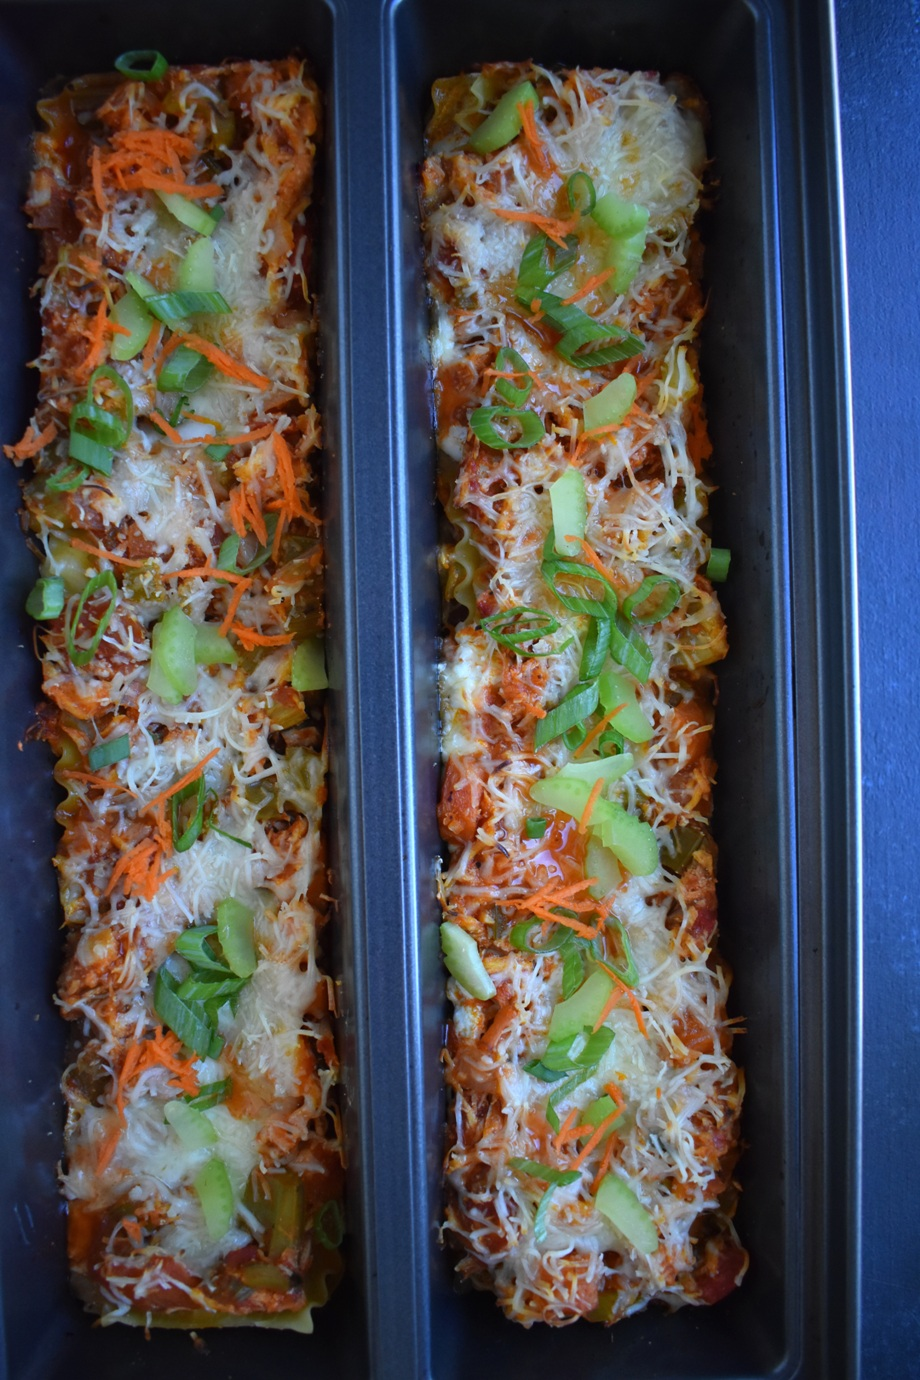 Buffalo Chicken Lasagna is loaded with spicy buffalo flavor, shredded chicken, celery, carrots, onions and is covered in melted cheese. It is rich and creamy making it the perfect filling dinner! www.nutritionistreviews.com